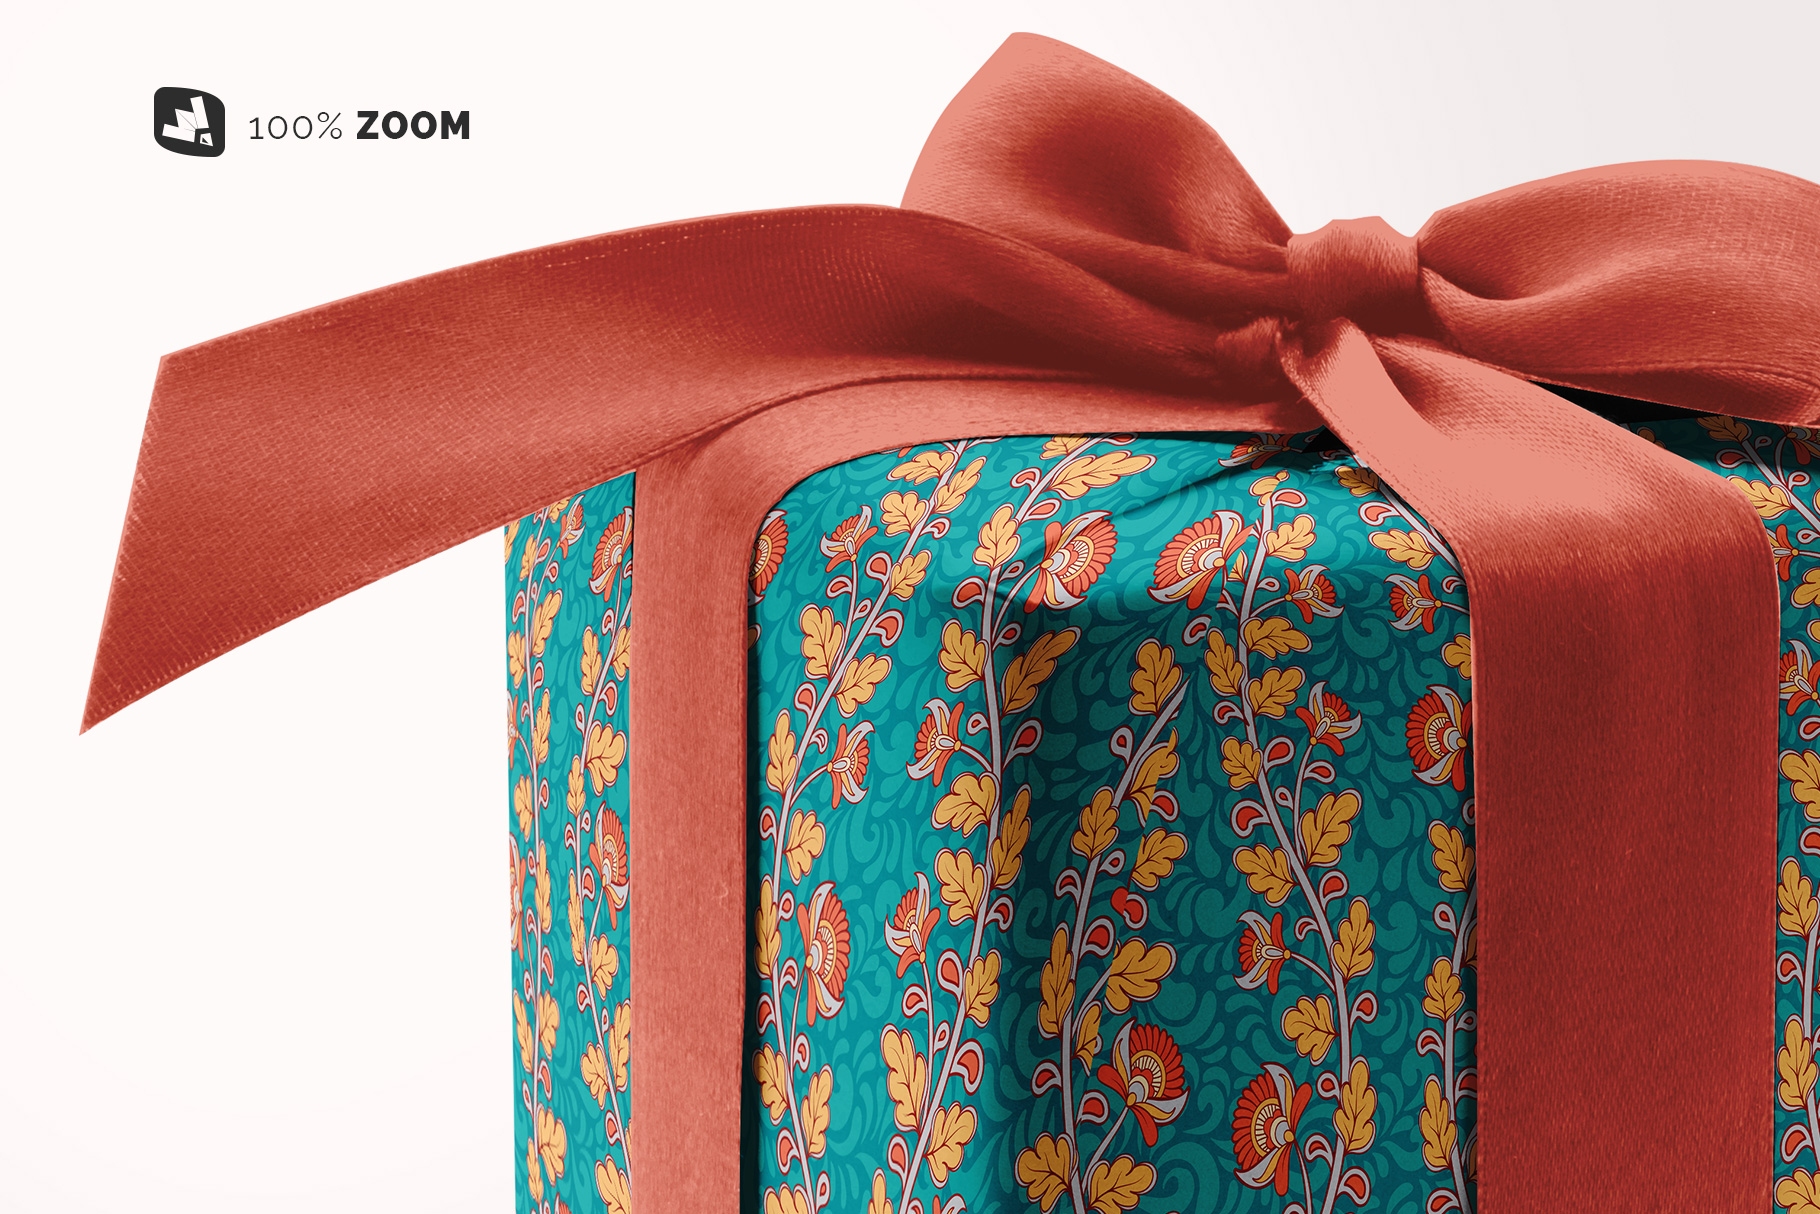 zoomed in image of the wrapping paper mockup with box